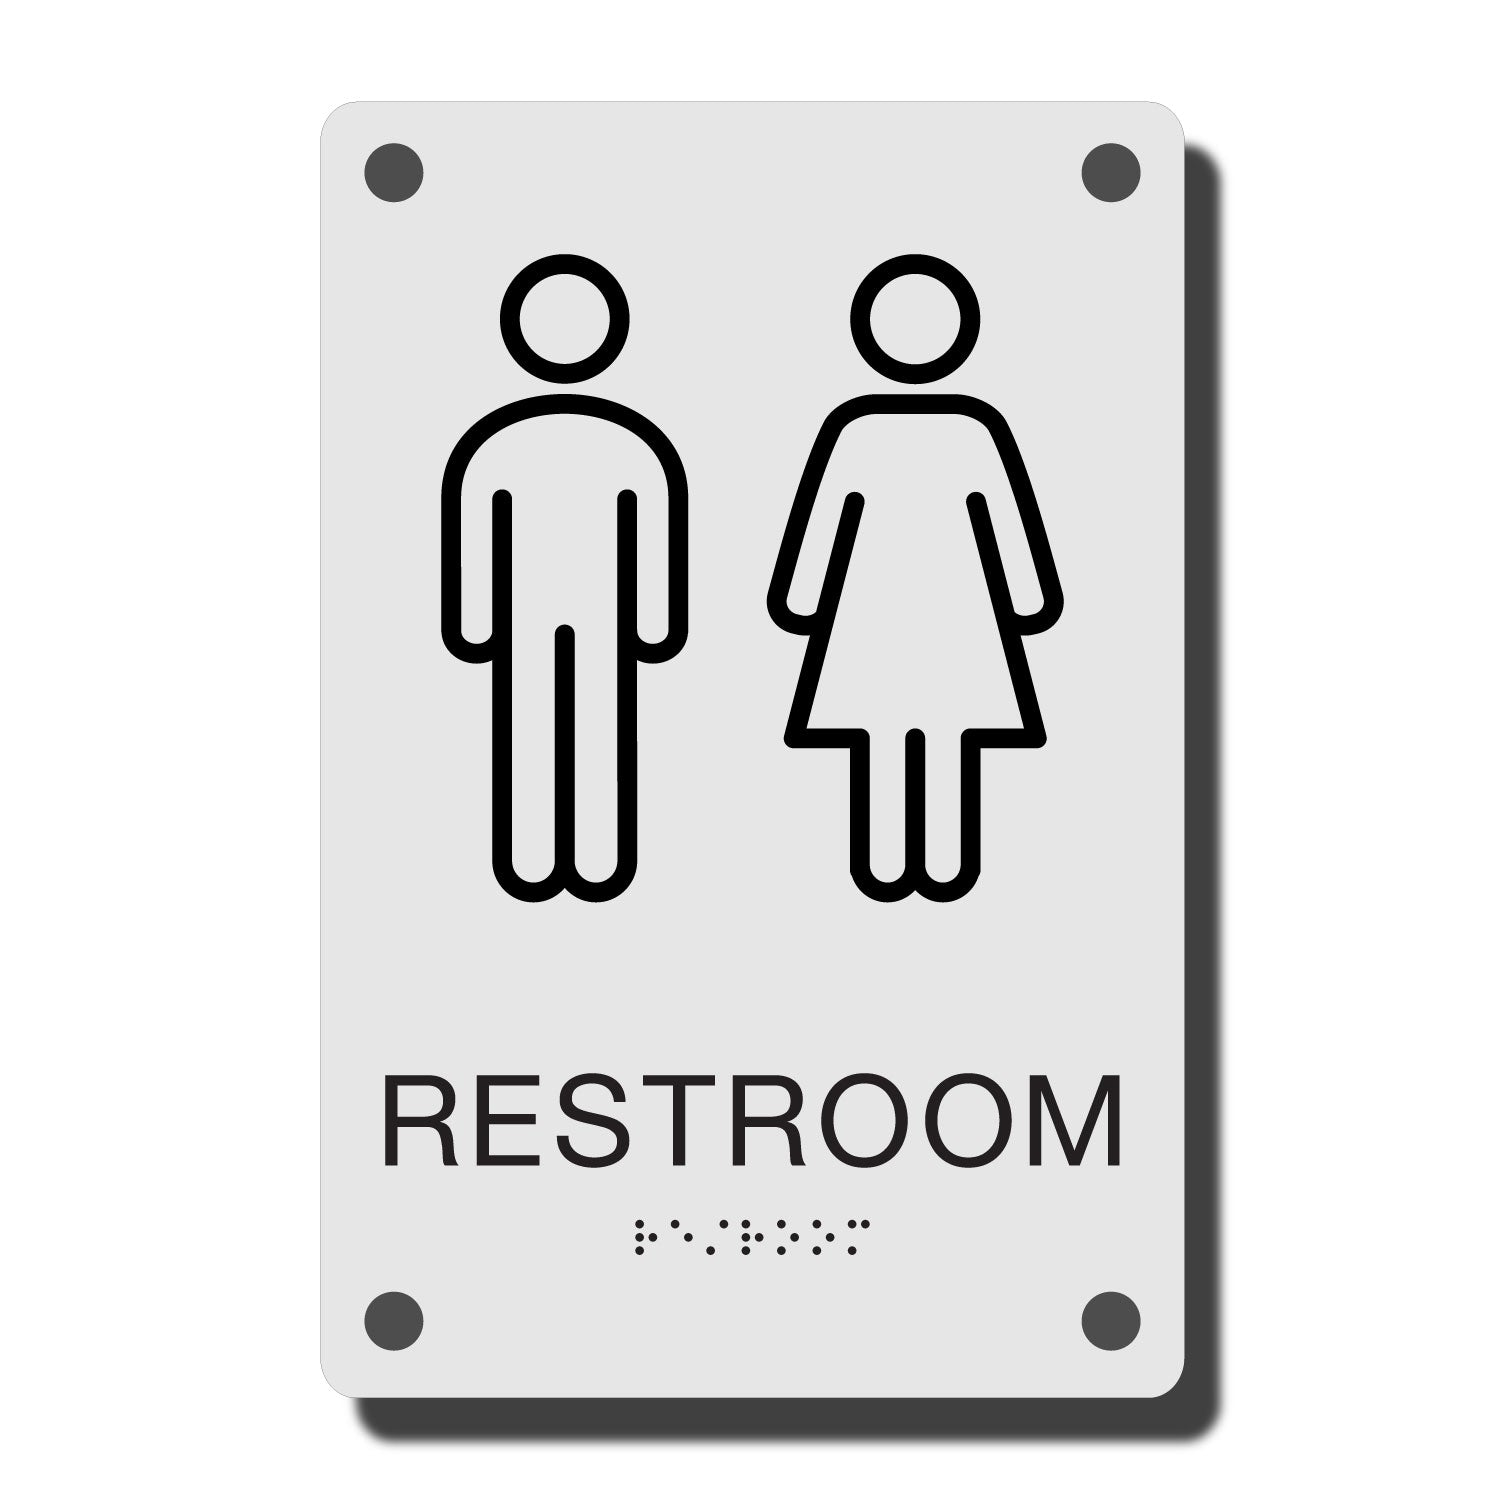 ADA Construct Restroom Sign - NapADASigns - ADA Restroom Sign with Braille - Acrylic - Construct Collection - napadasigns